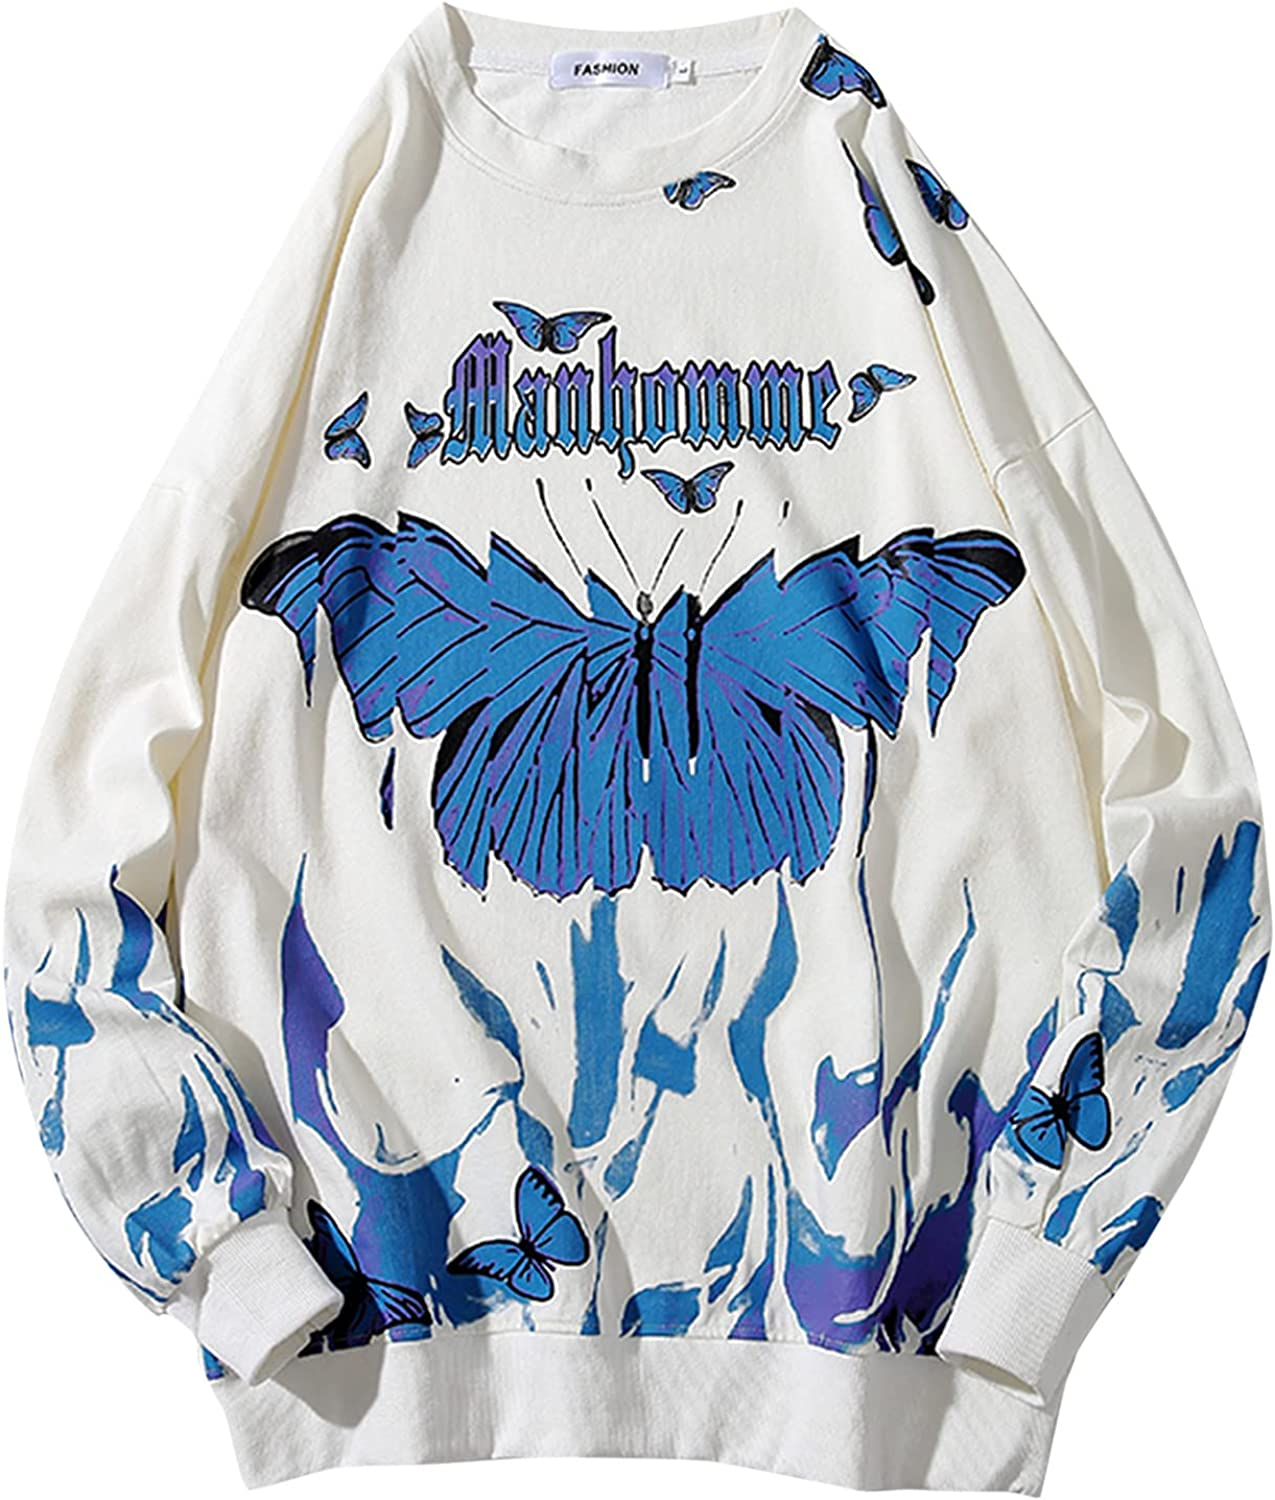 XXBR Butterflies Sweatshirts for Mens, Fall Plus Size Drape Shoulder Young Teen Boys Fashion Crewneck Pullover Tops